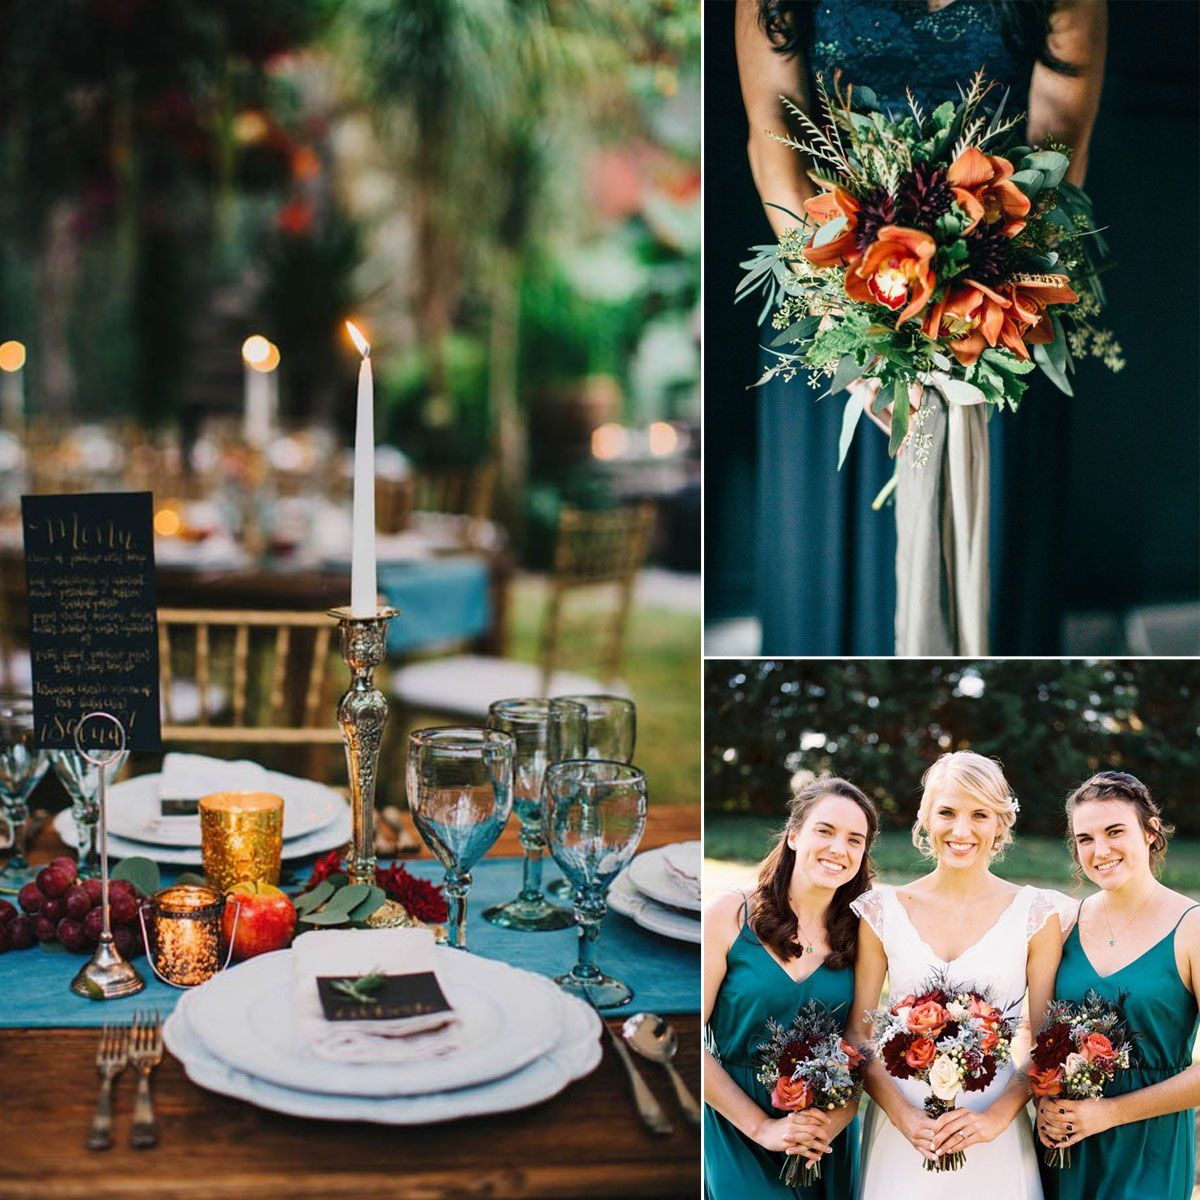 Fall Wedding Color Ideas: Romantic Teal Blue And Orange Color Inspiration